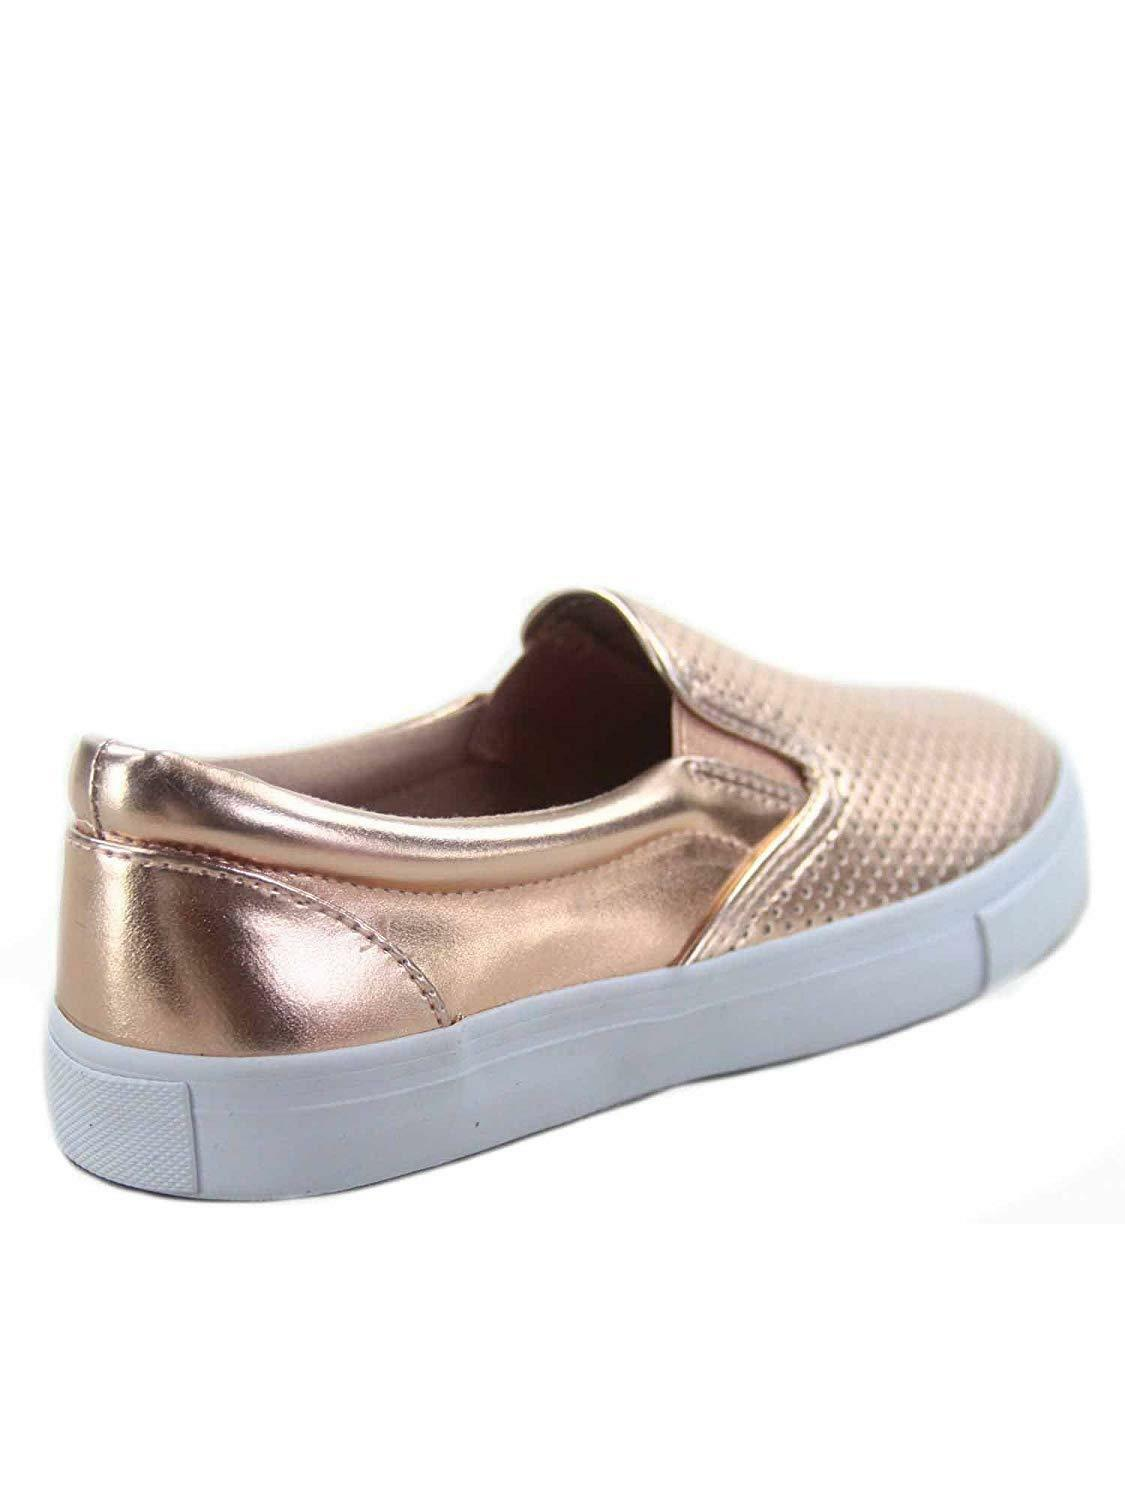 Soda Tracer-S Women's Cute Perforated Slip On Flat Round Toe Sneaker Shoes image 6